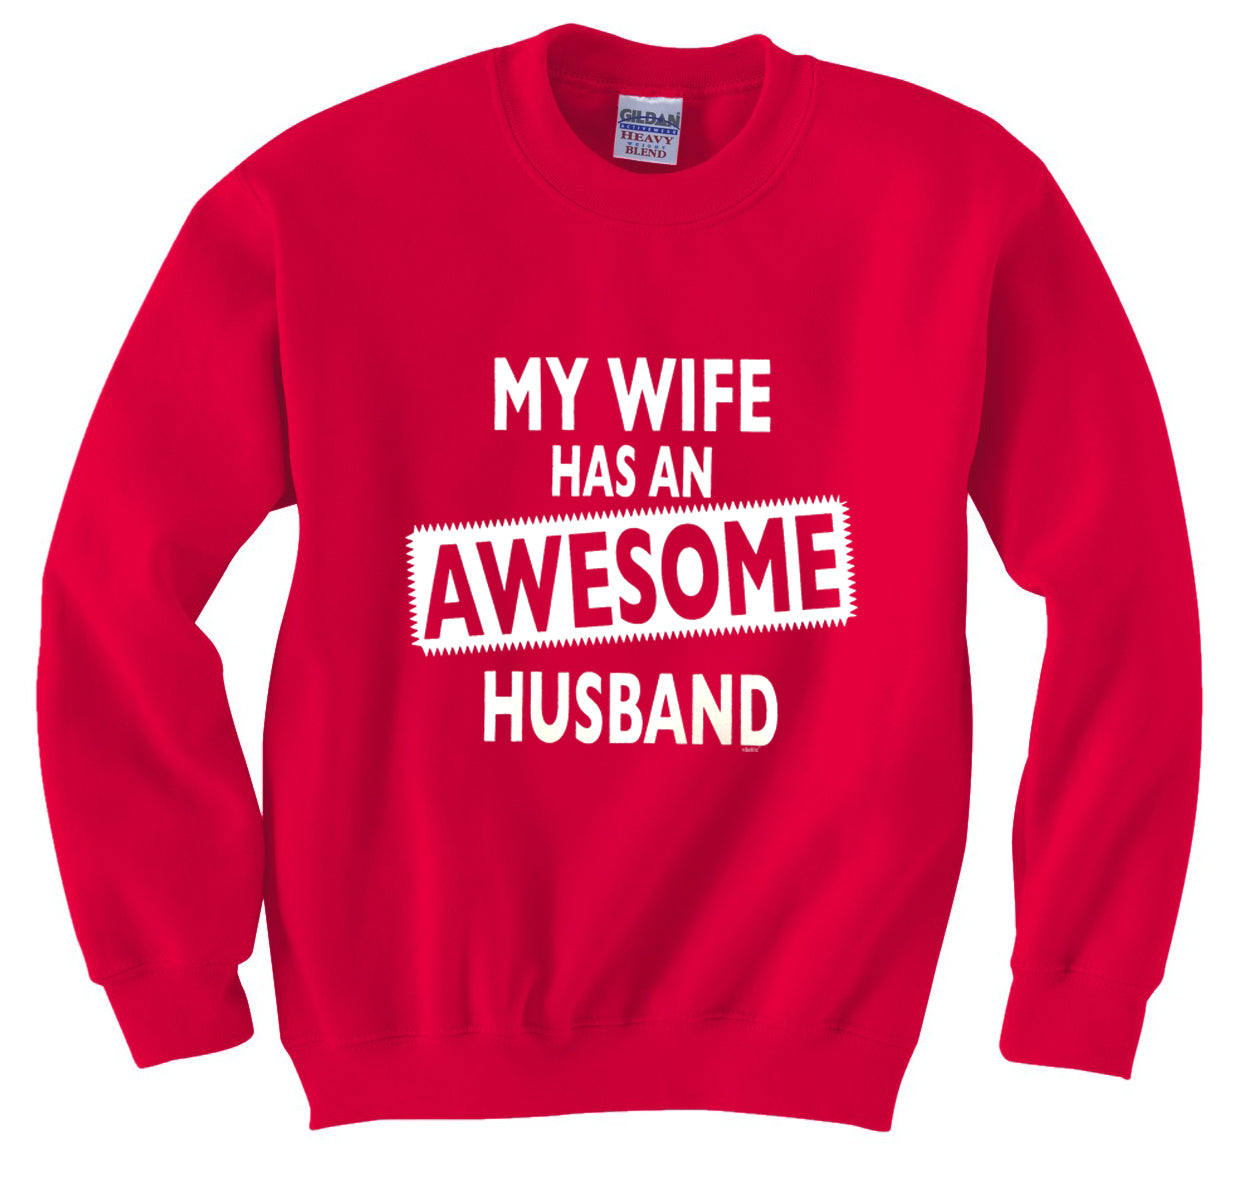 My Wife Has An Awesome Husband Crew Neck Sweatshirt